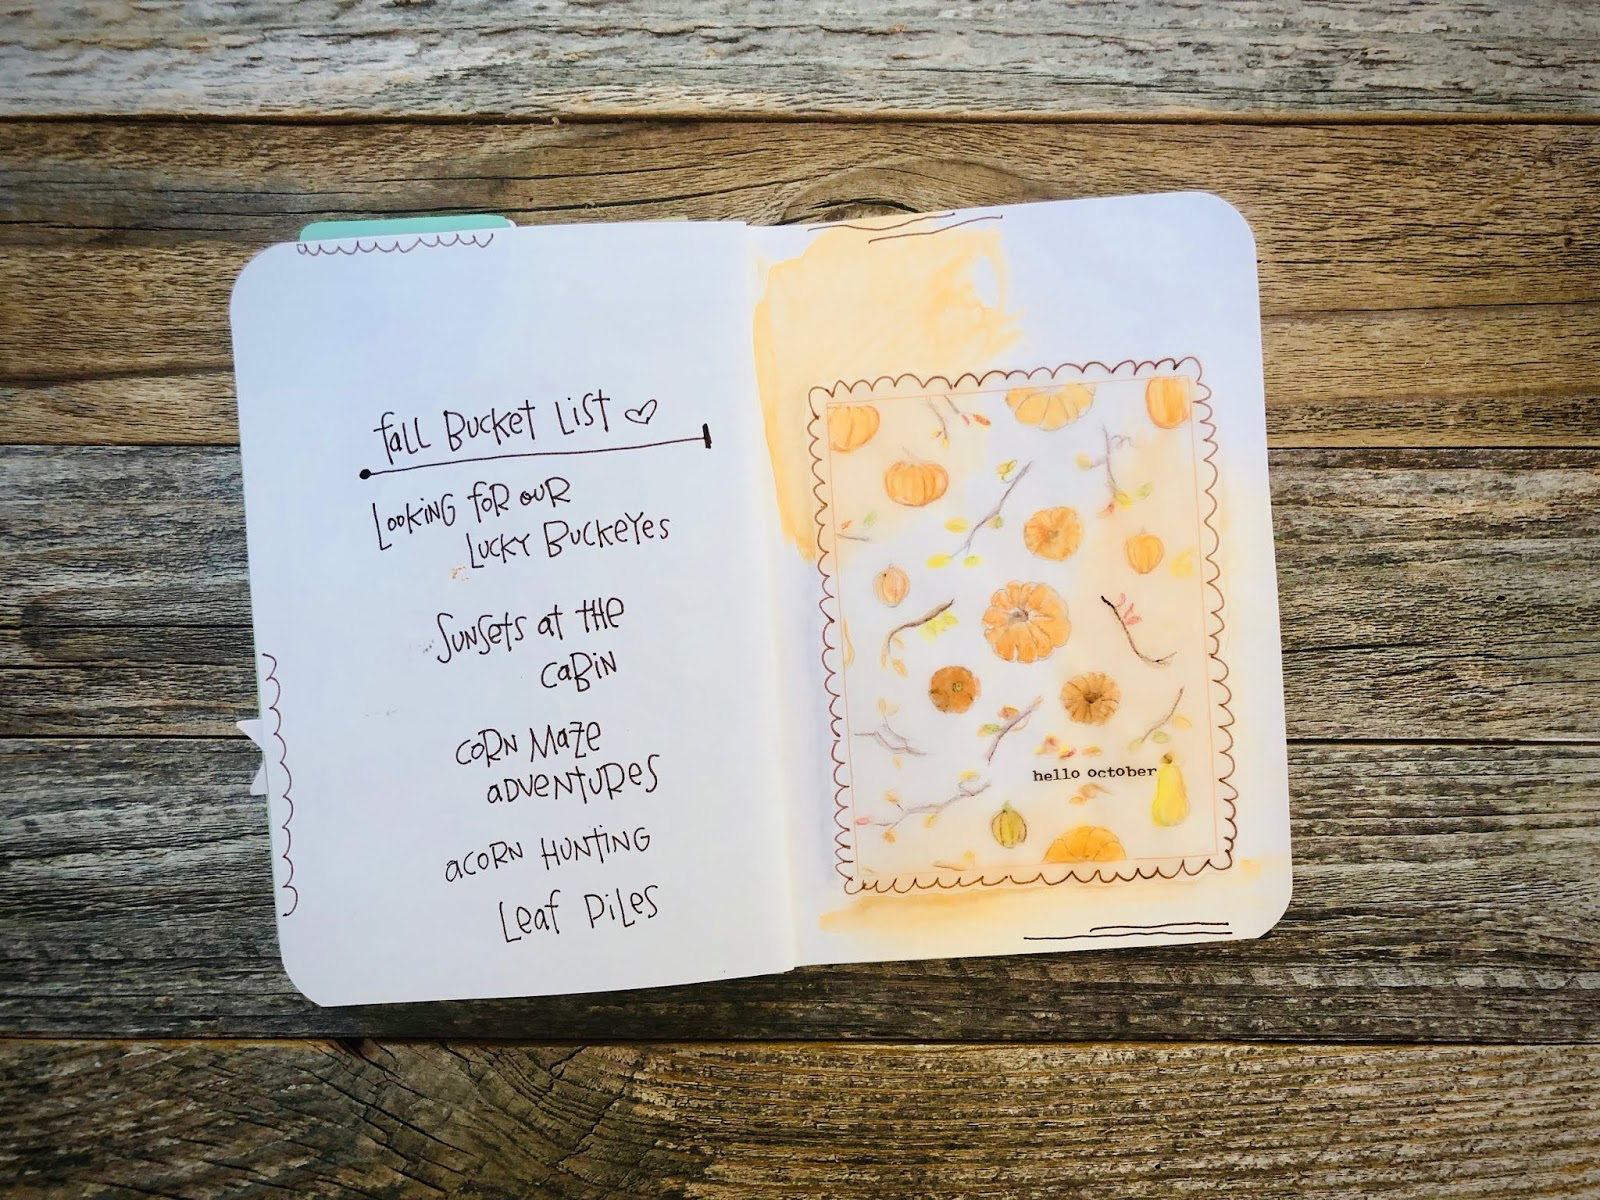 #Hello October #October #Pumpkins #journaling card #free #printable #Fall #Autumn